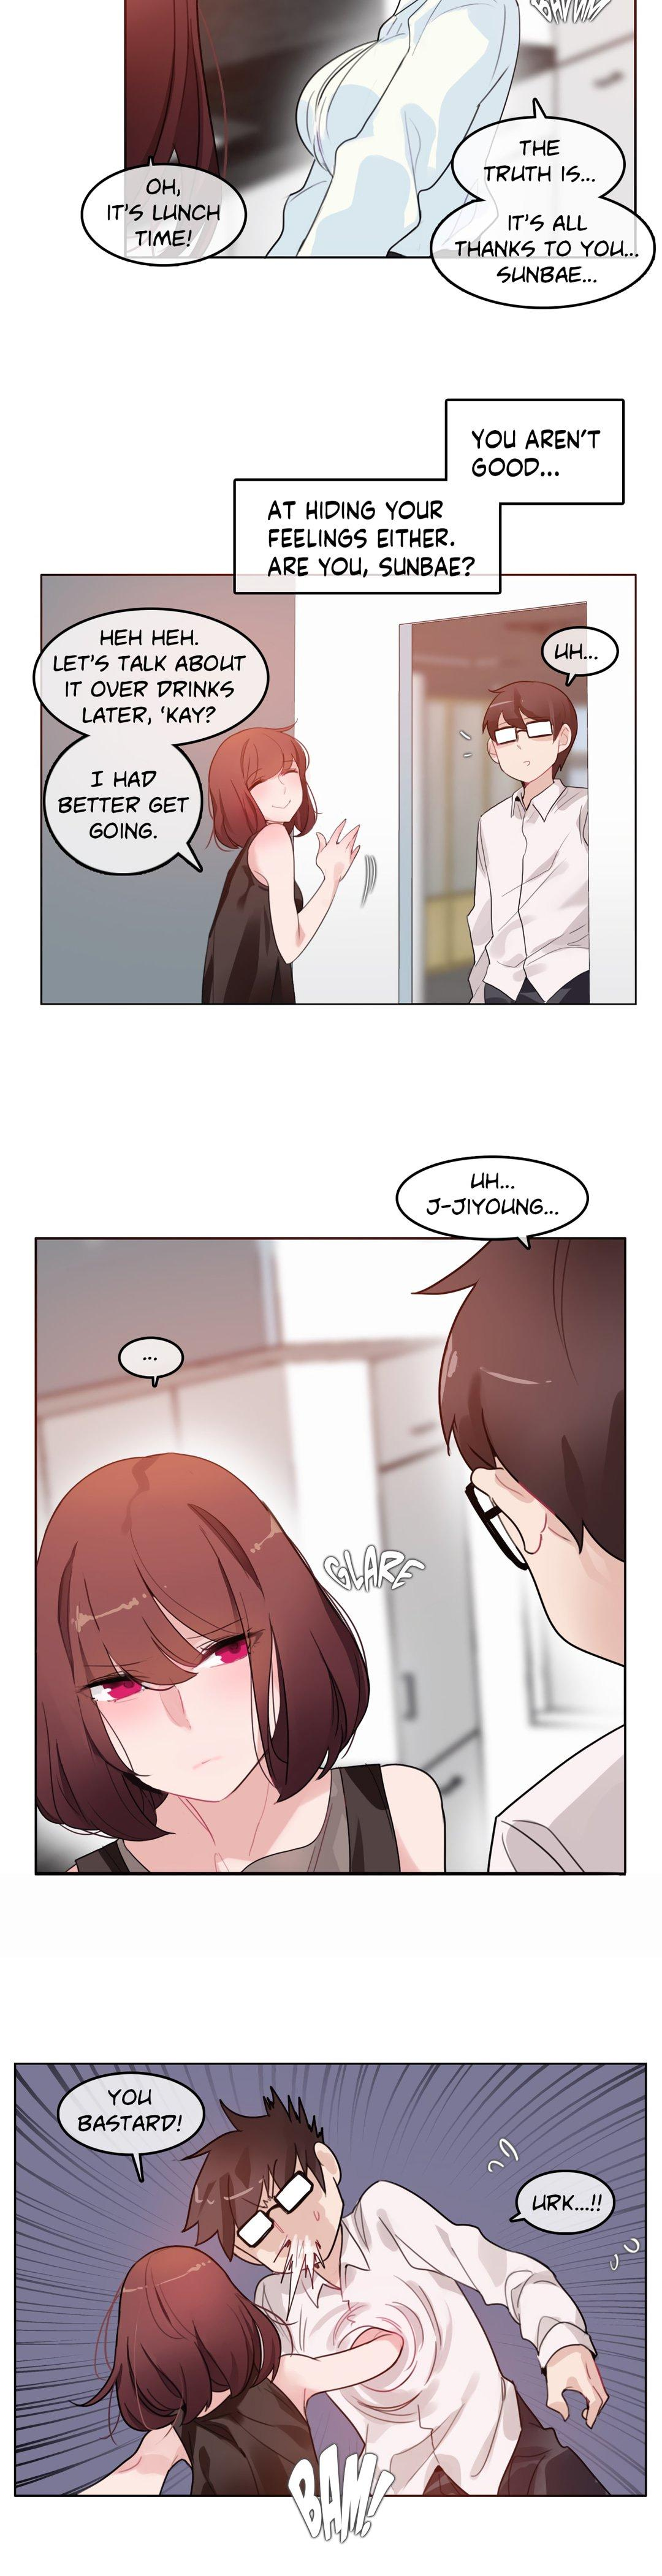 A Pervert's Daily Life Ch. 1-34 711